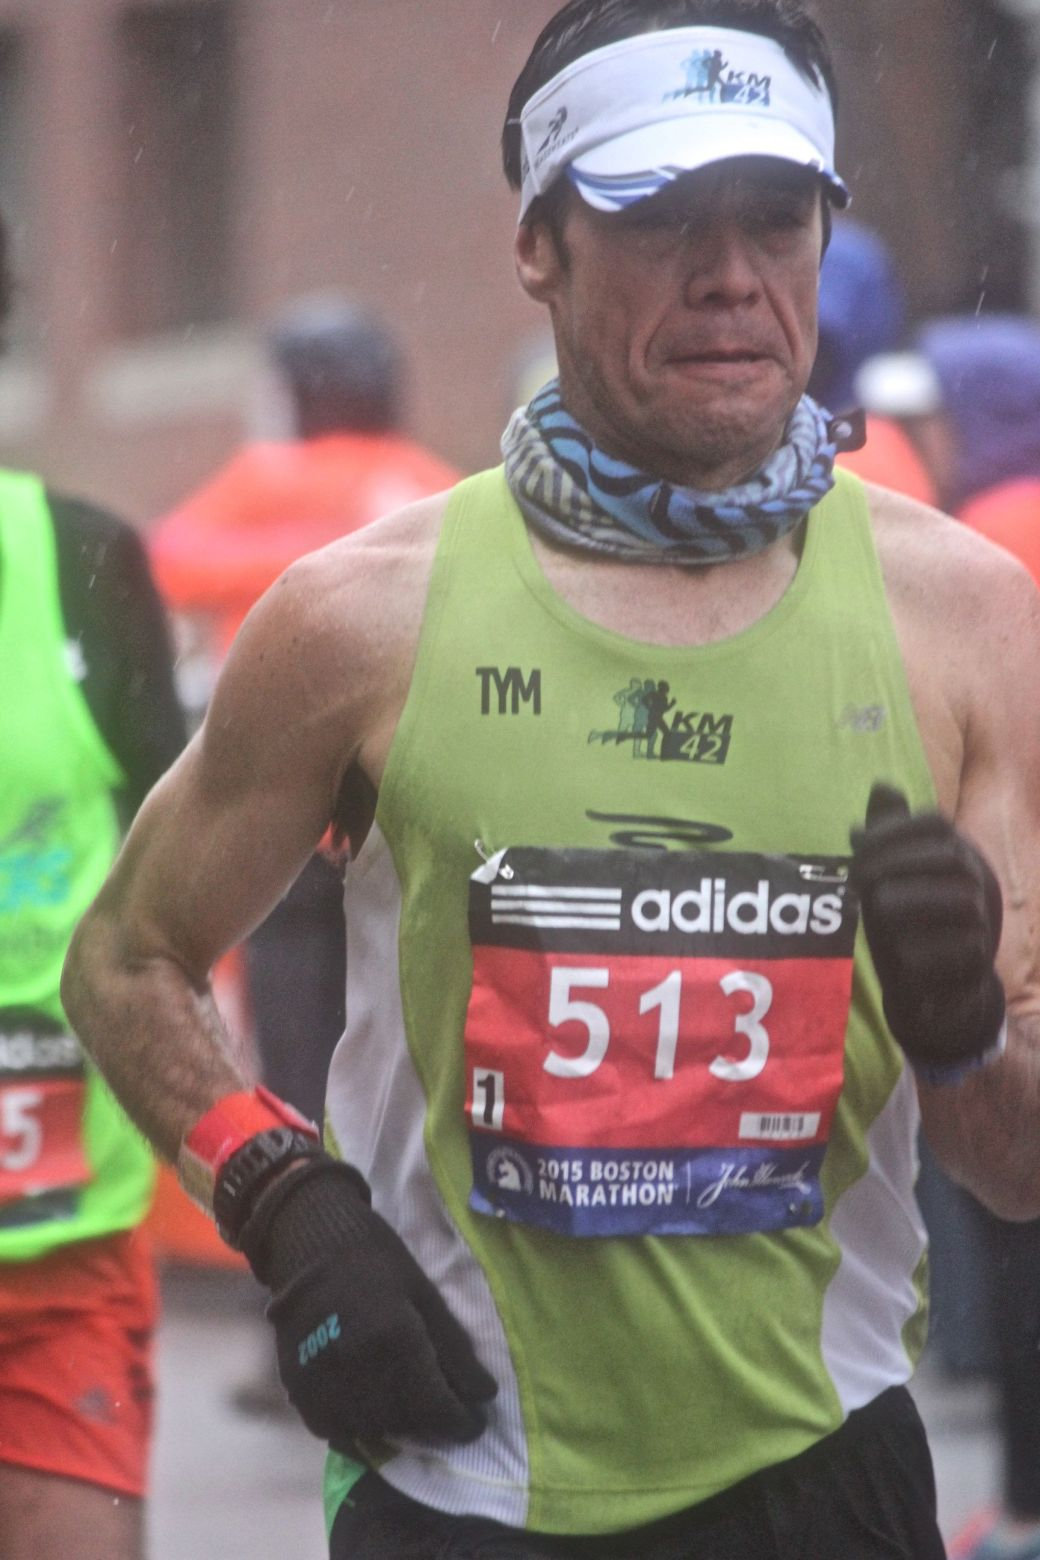 boston marathon april 20 2015 racer number 513 rain